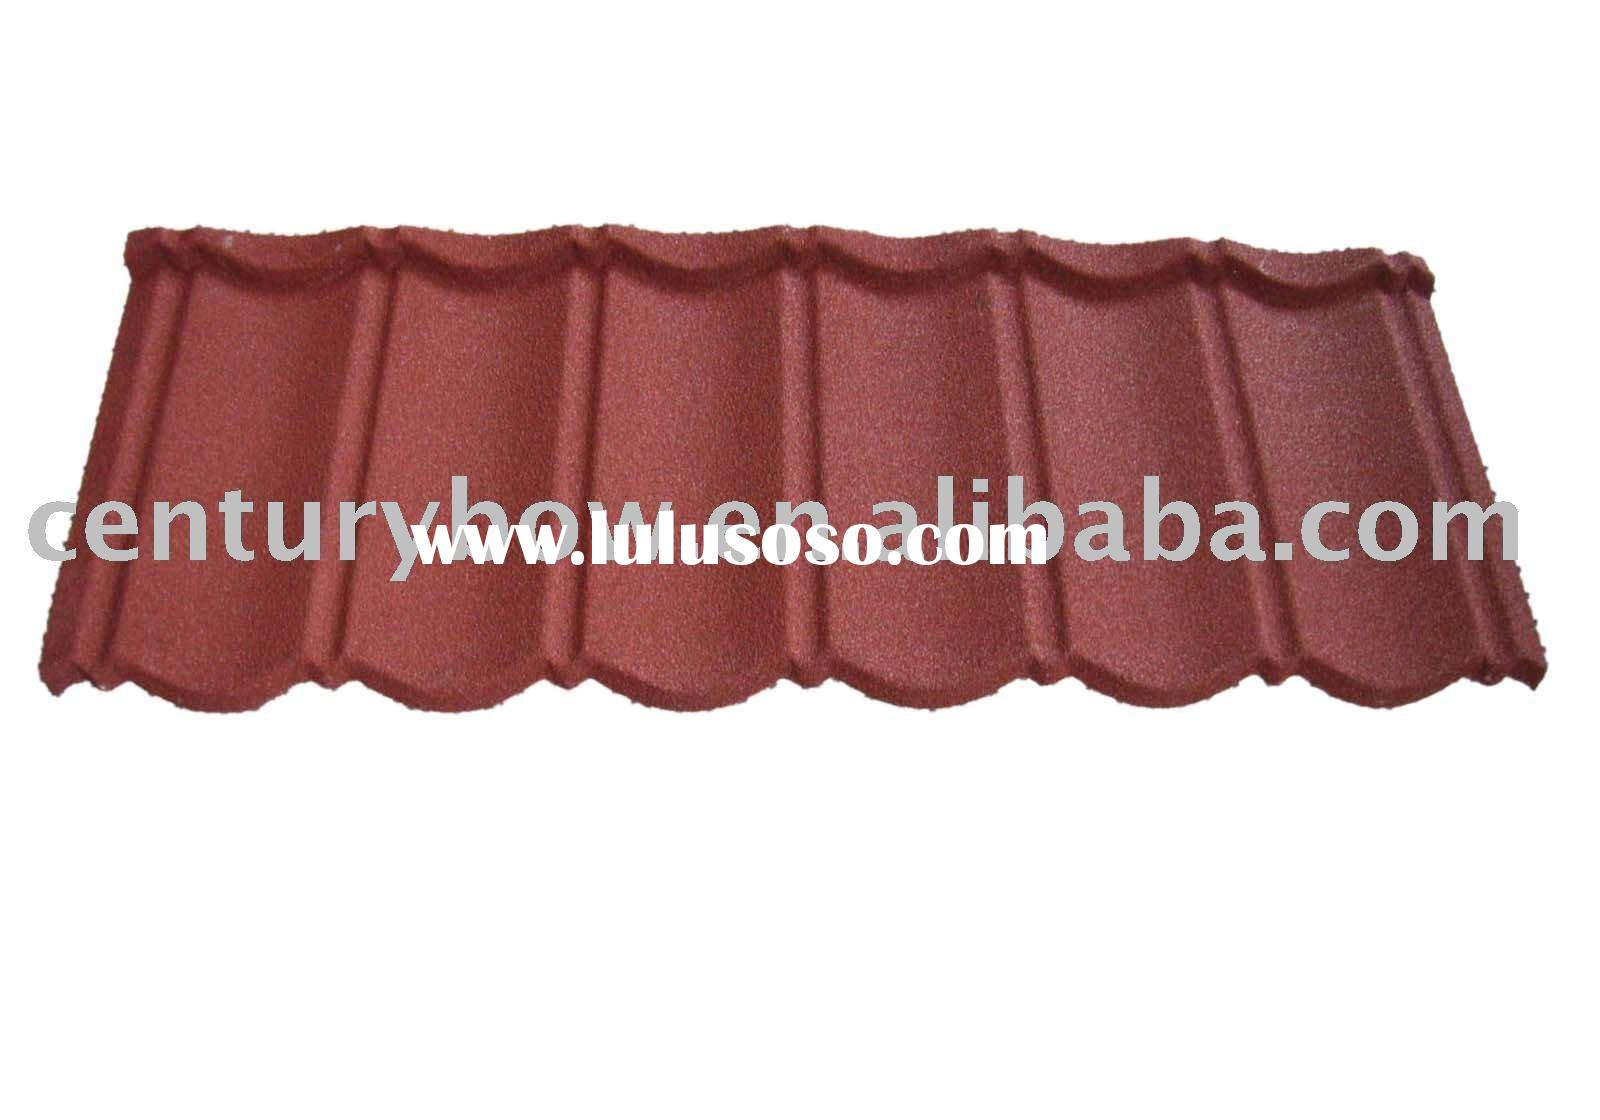 Stone Chip Coated Zinc Aluminum Steel Roof Tile, Colored Roof Tile, Roofing Tile